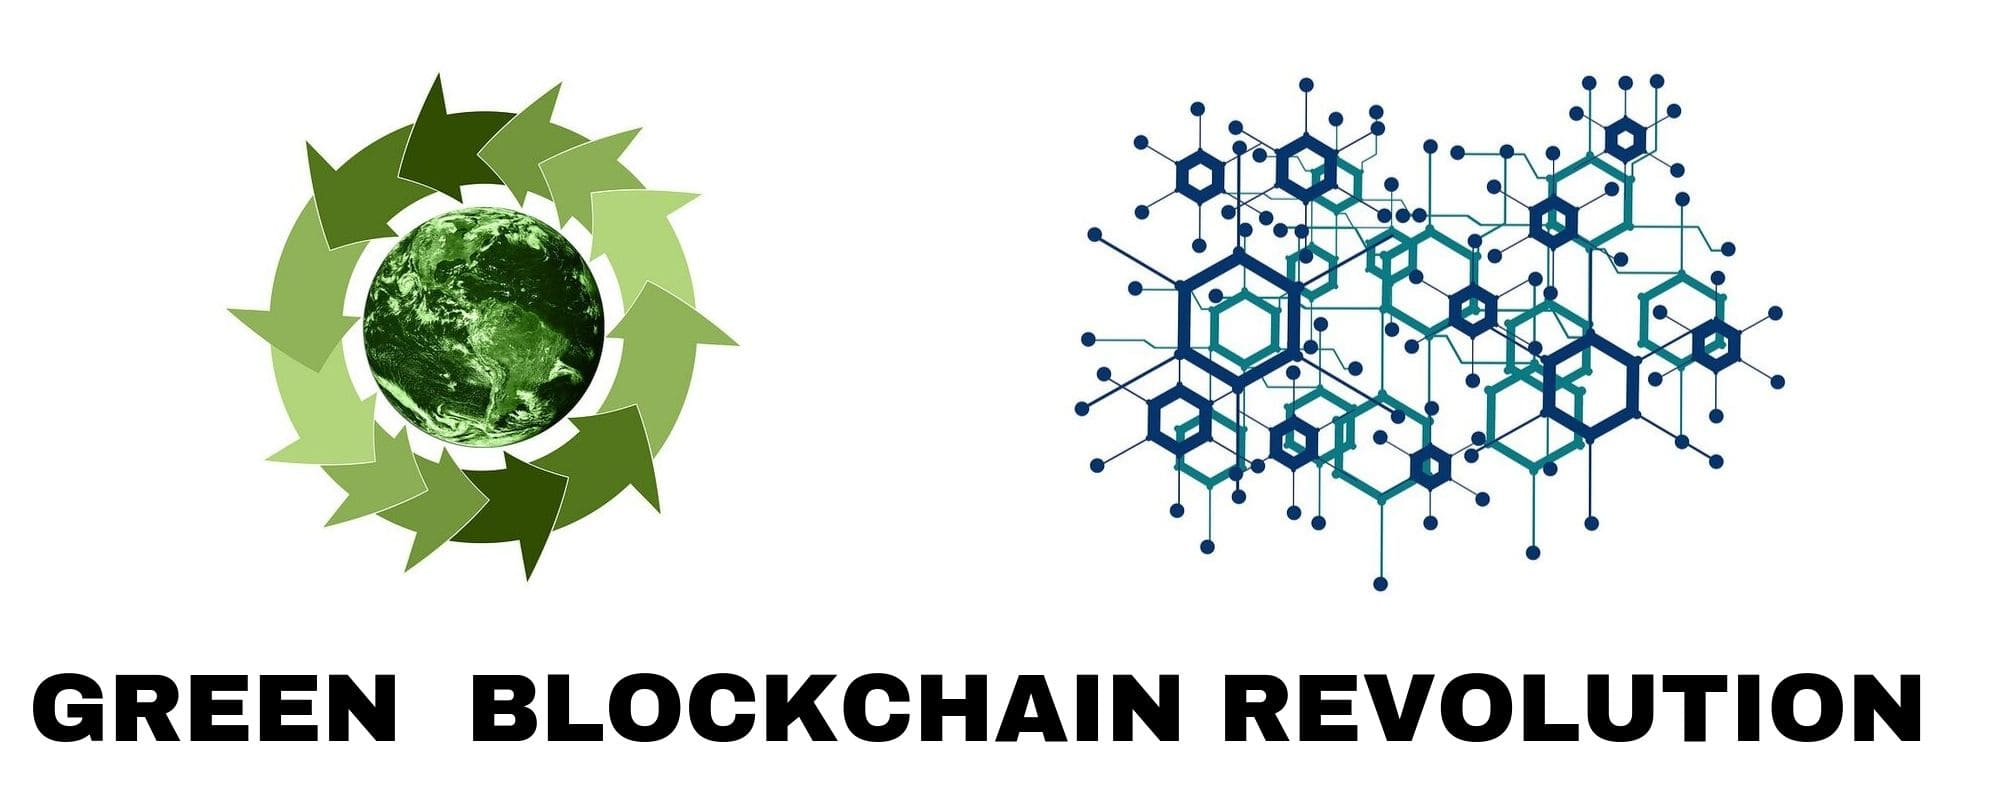 green blockchain revolution